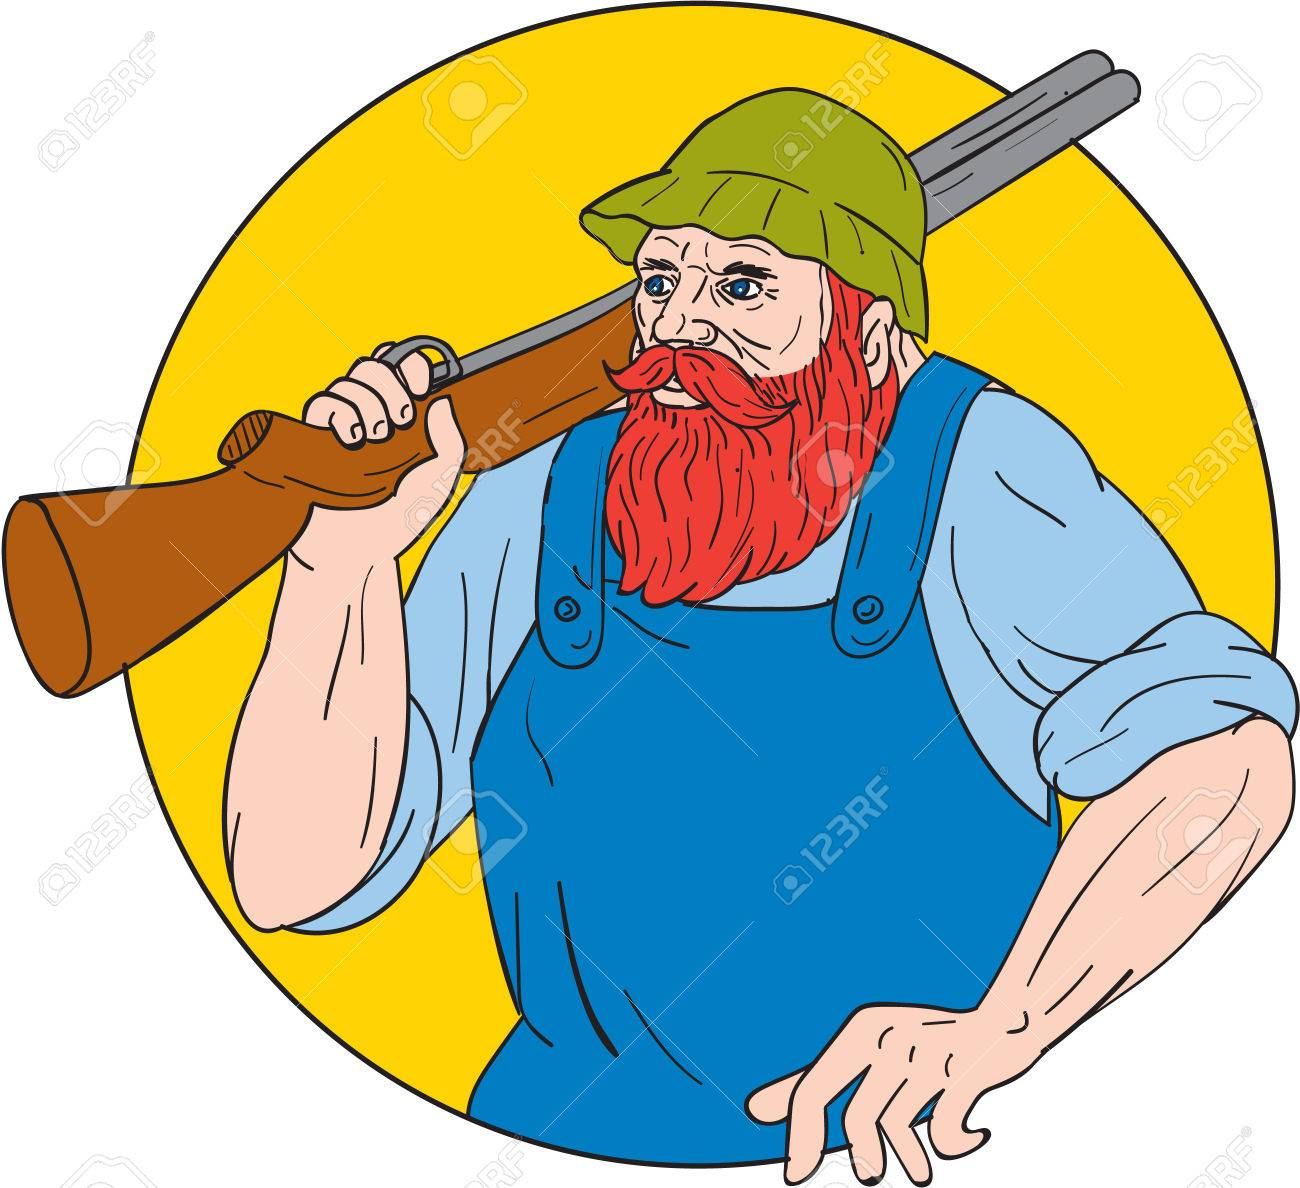 hight resolution of drawing sketch style illustration of paul bunyan a giant lumberjack in american folklore carrying